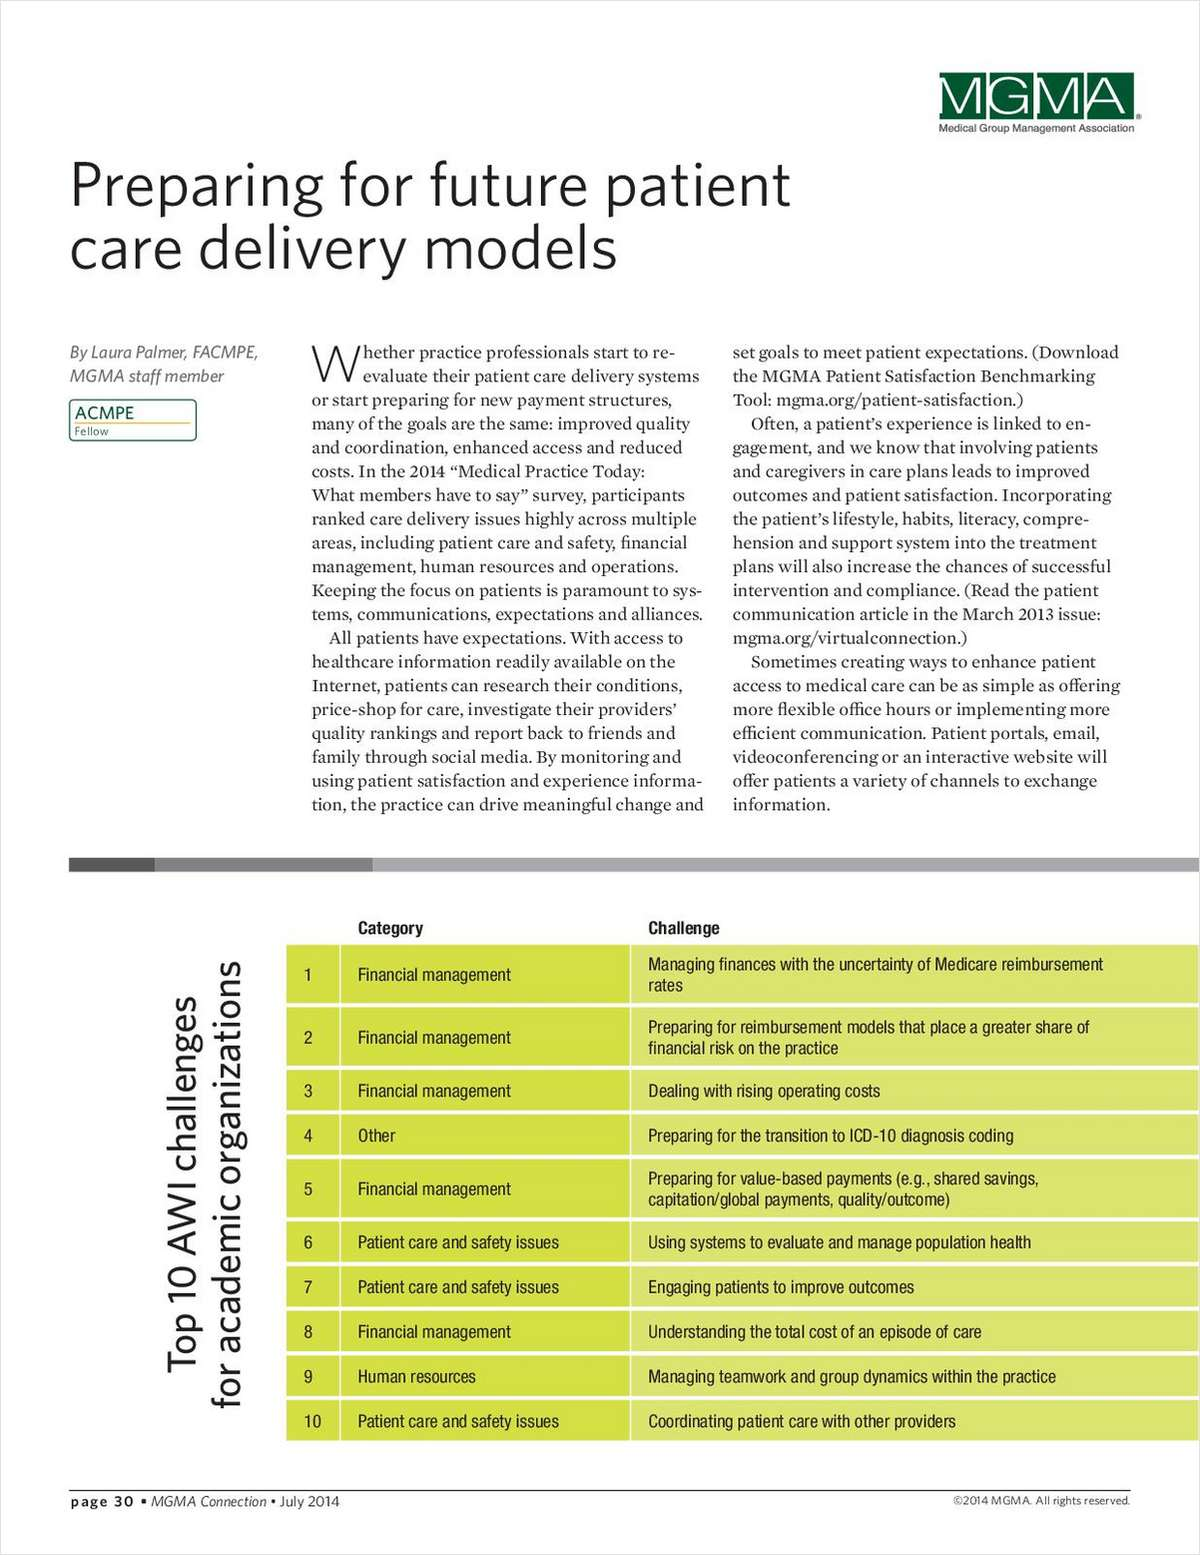 Preparing for future patient care delivery models